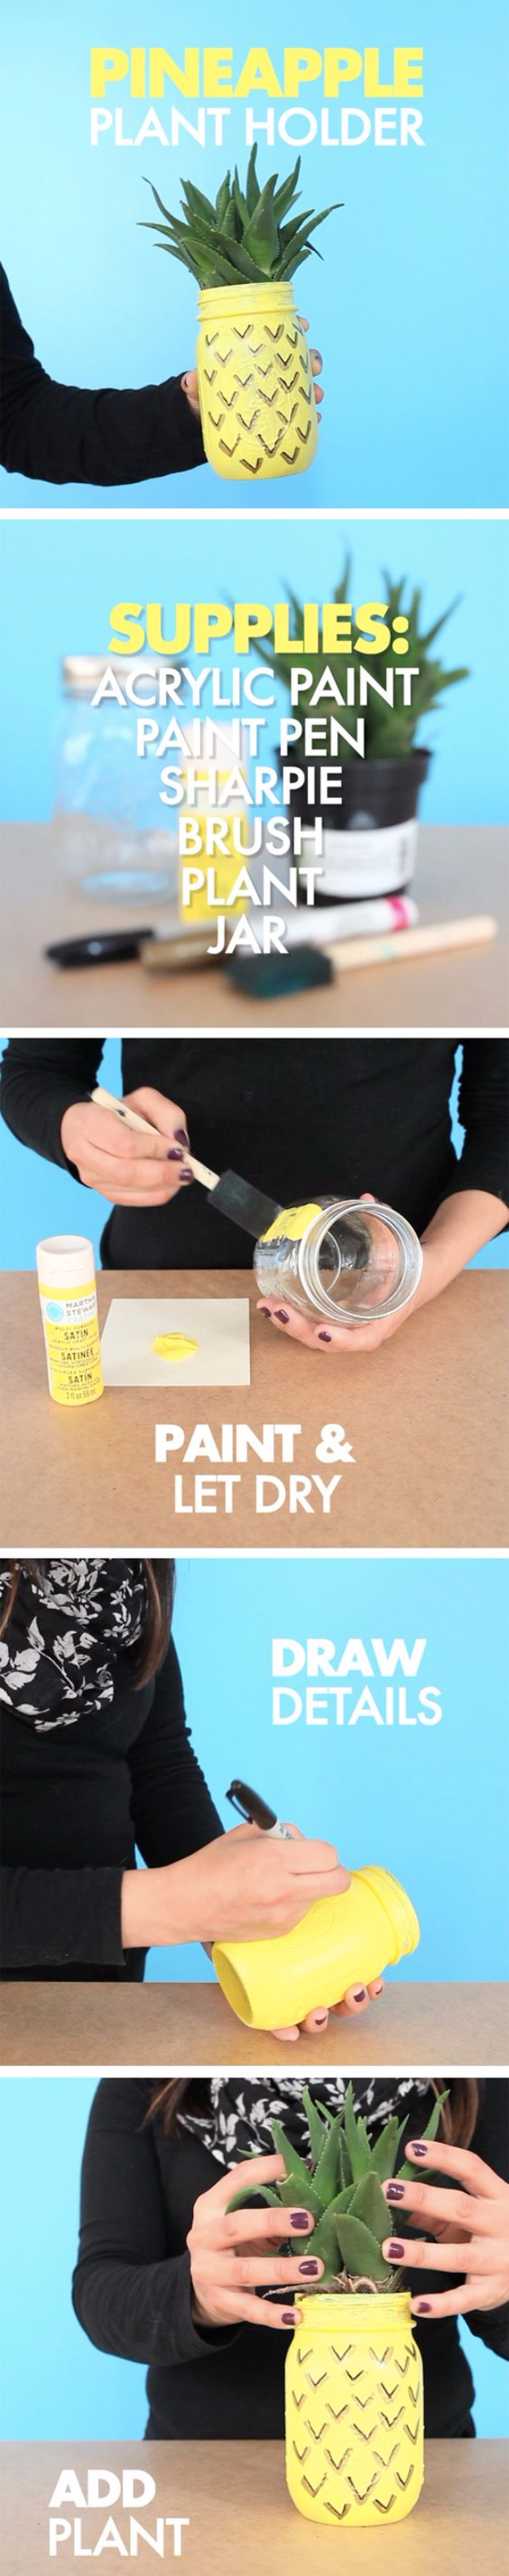 Mason Jar Crafts You Can Make In Under an Hour - DIY Pineapple Mason Jar Planter- Quick Mason Jar DIY Projects that Make Cool Home Decor and Awesome DIY Gifts - Best Creative Ideas for Mason Jars with Step By Step Tutorials and Instructions - For Teens, For Home, For Gifts, For Kids, For Summer, For Fall #masonjarcrafts #easycrafts